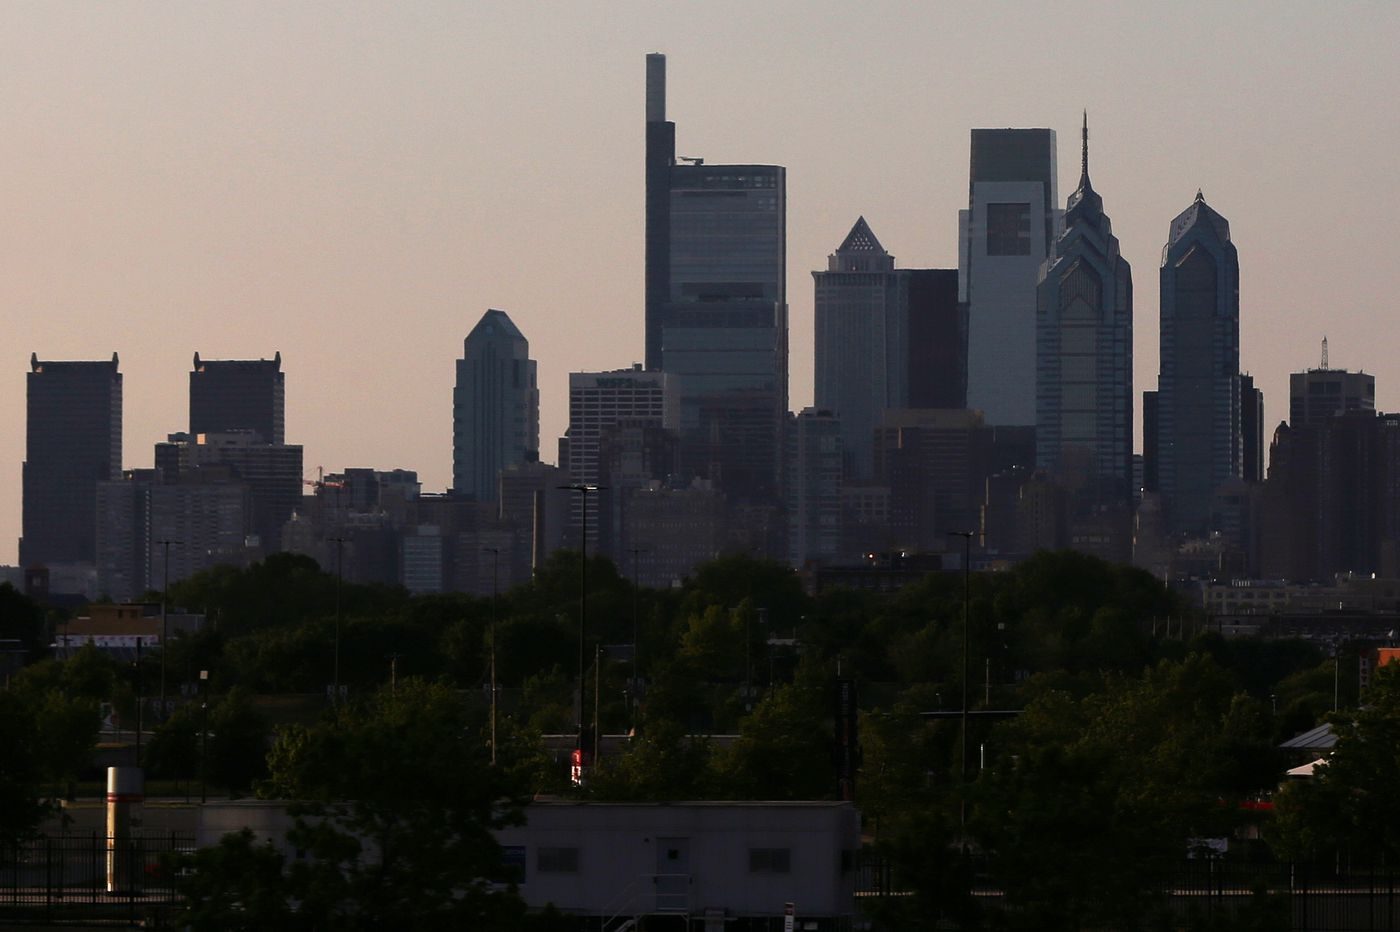 Philly has fewer businesses per capita than other big East Coast cities, report says